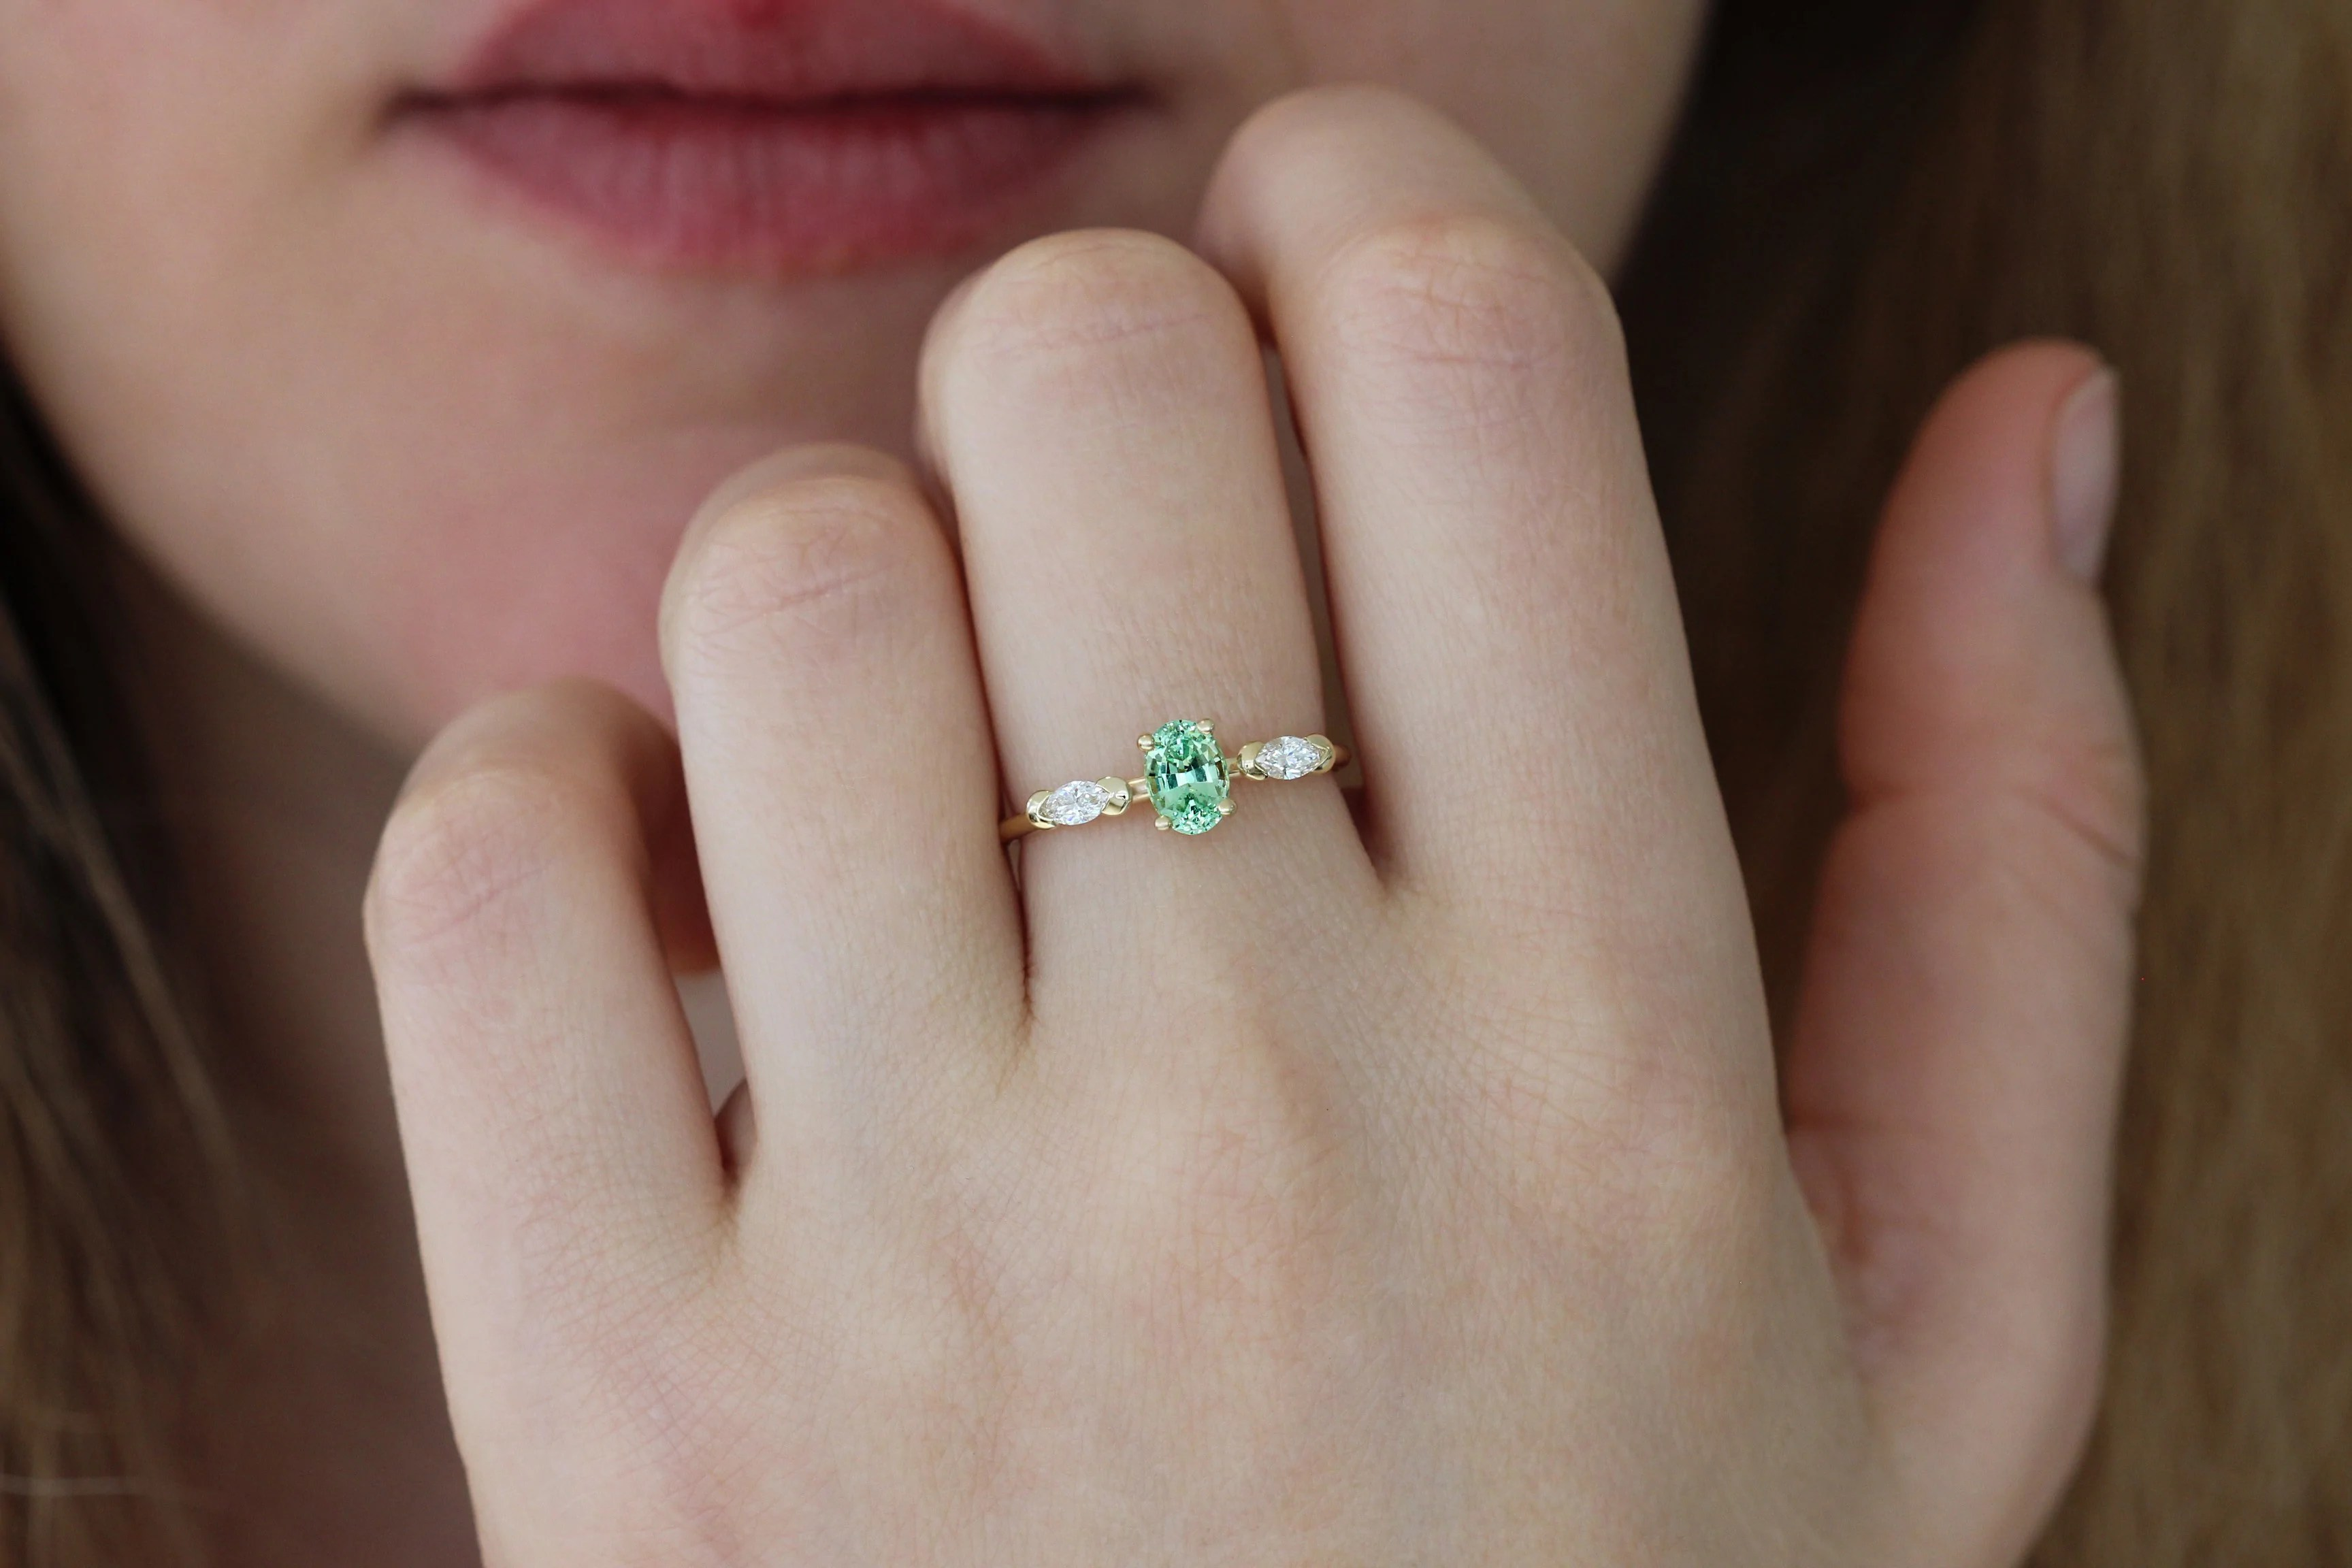 marquise diamond wedding set with mint garnet garnet wedding ring set mint garnet engagement ring on finger